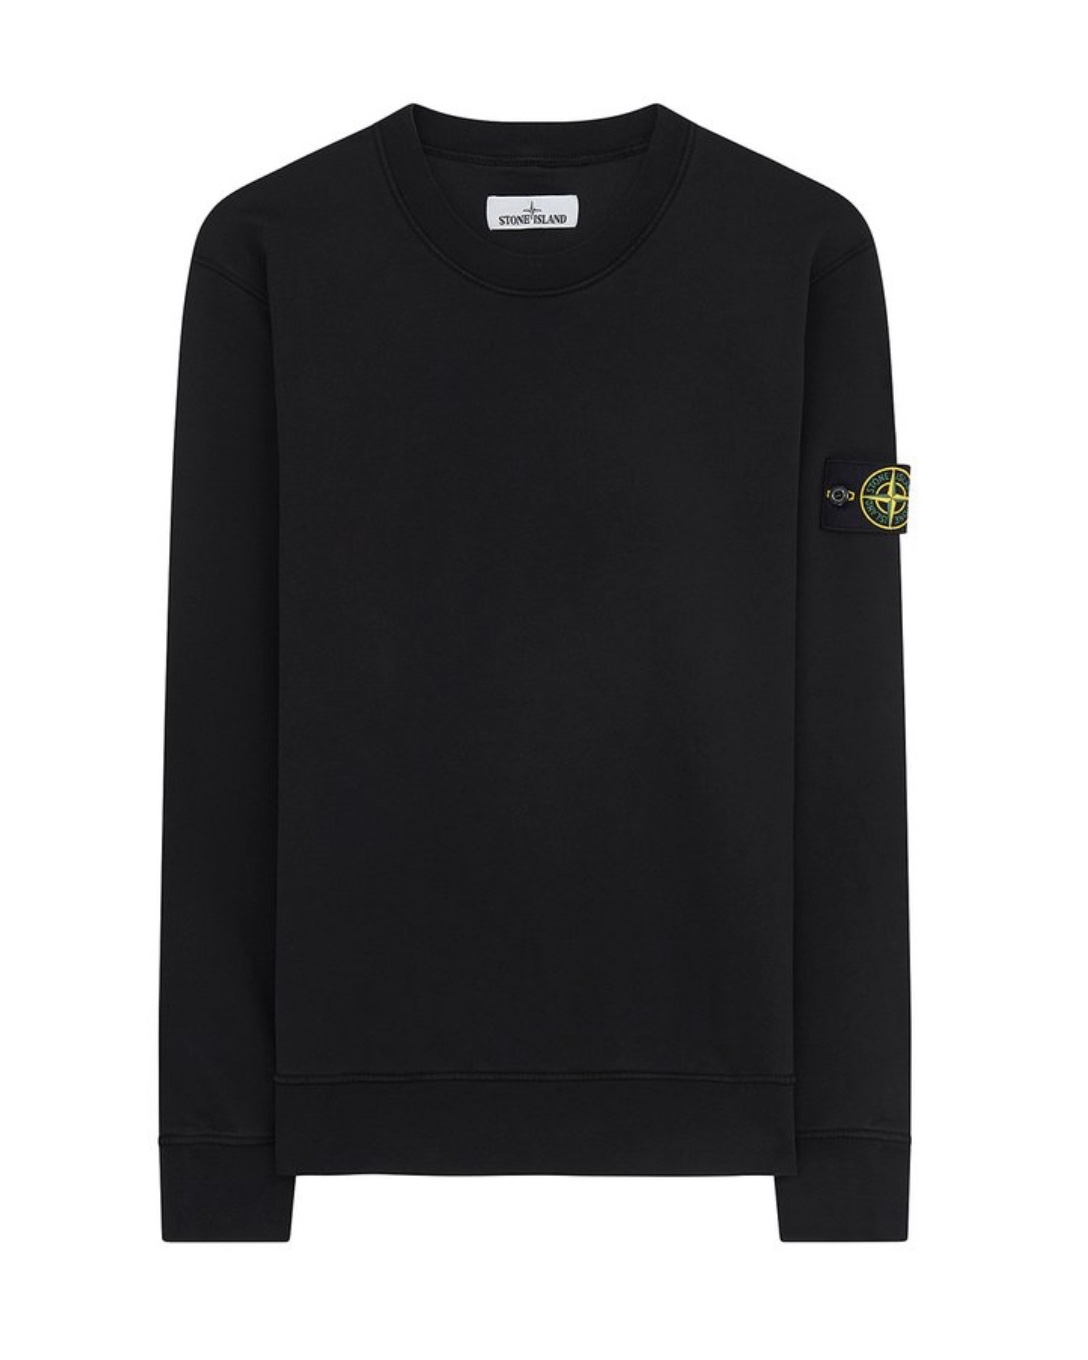 Sweatshirt In Black